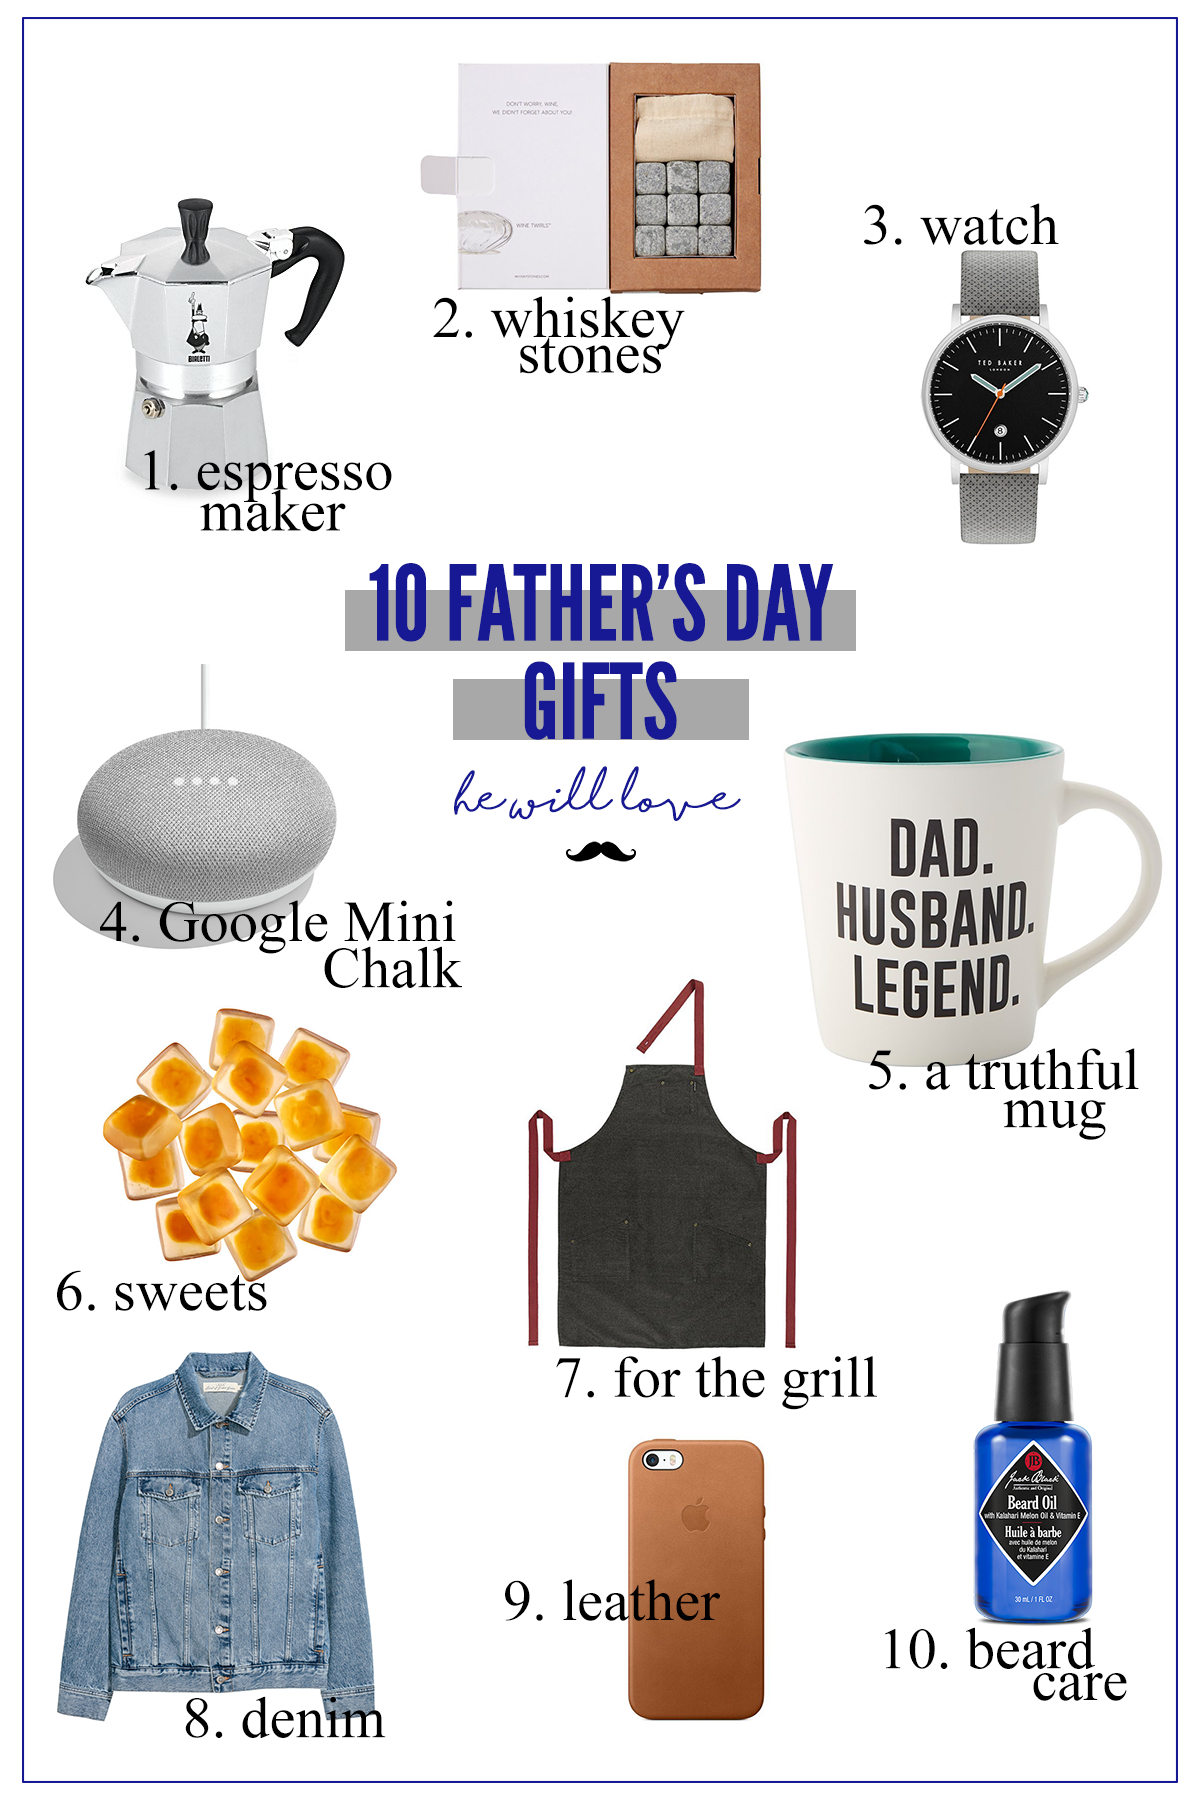 Ten fabulous gift ideas for all of the deserving dads and dad-figures.